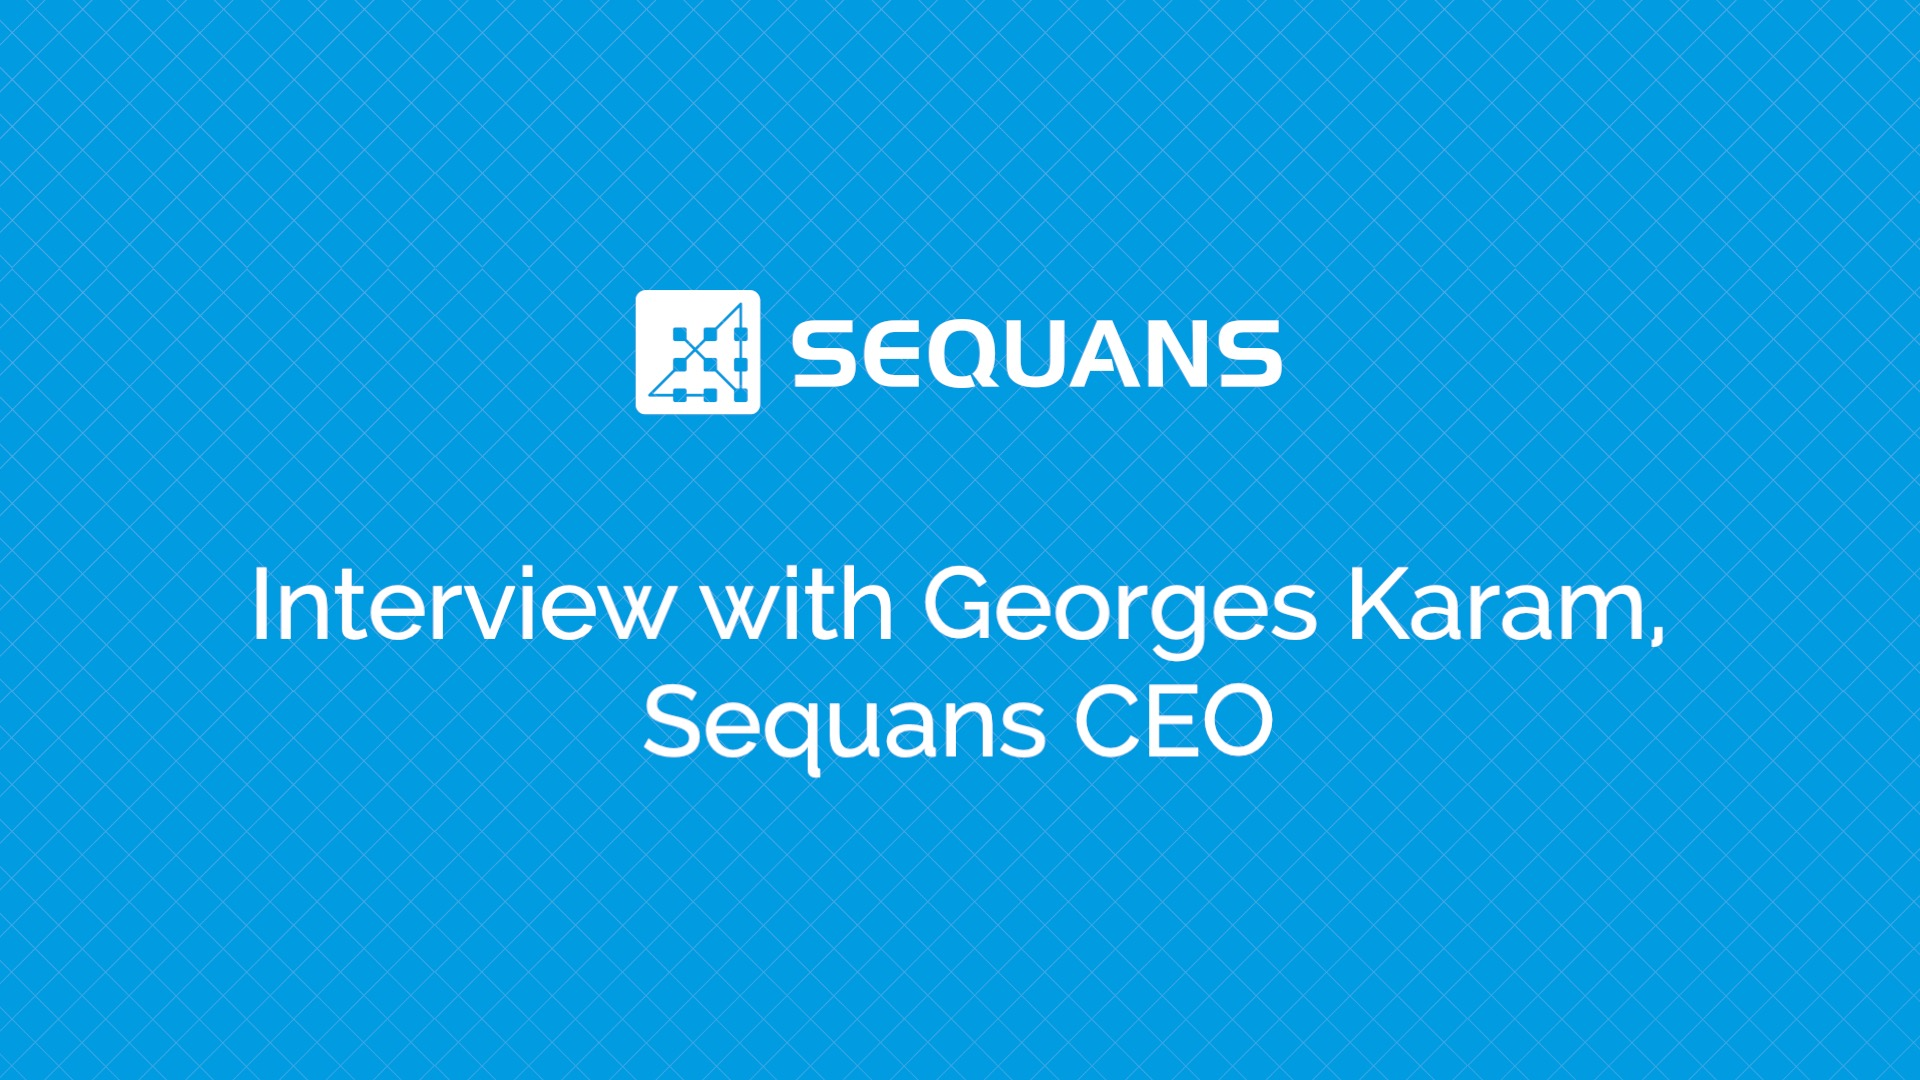 Interview With Georges Karam, Sequans CEO